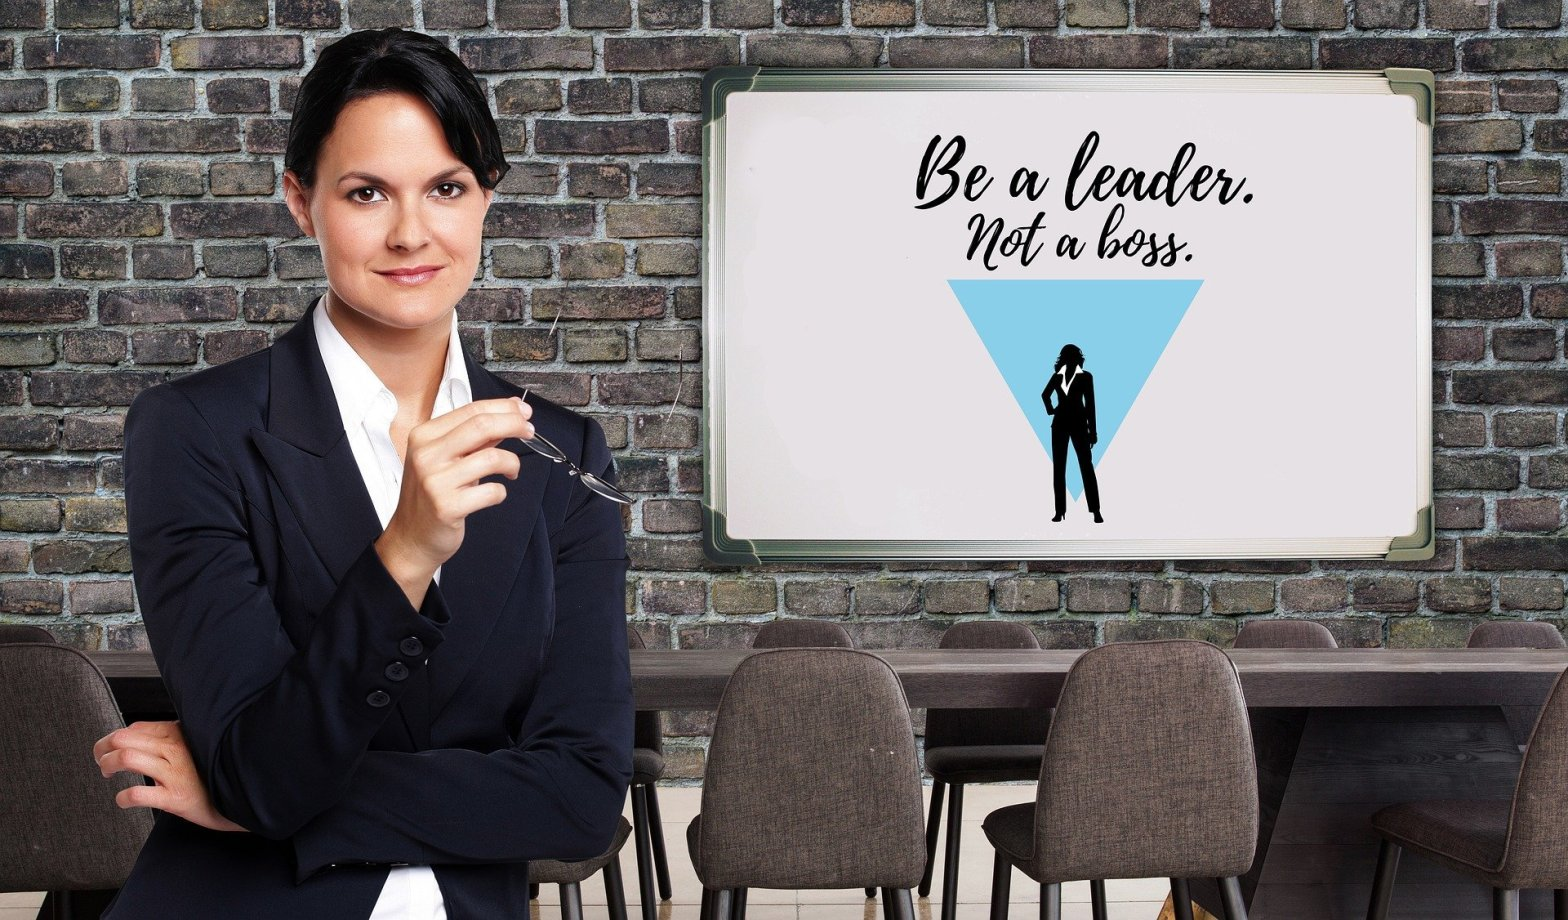 A woman stood in front of a board that reads be a leader not a boss